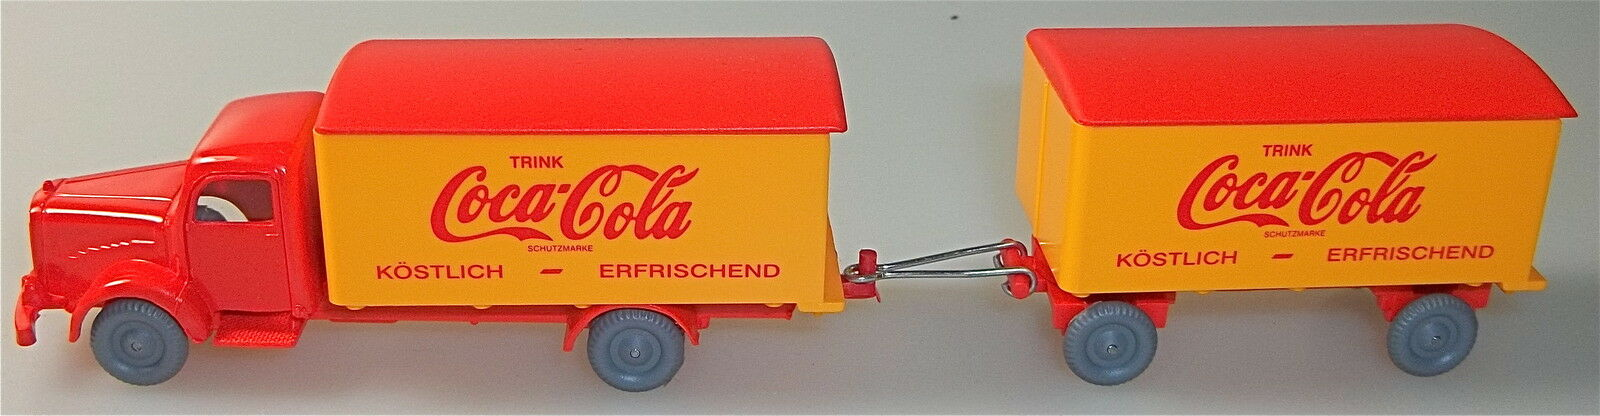 Coca - cola mercedes 5000 roadtrain rot - Orange imu h0 nach   34   å